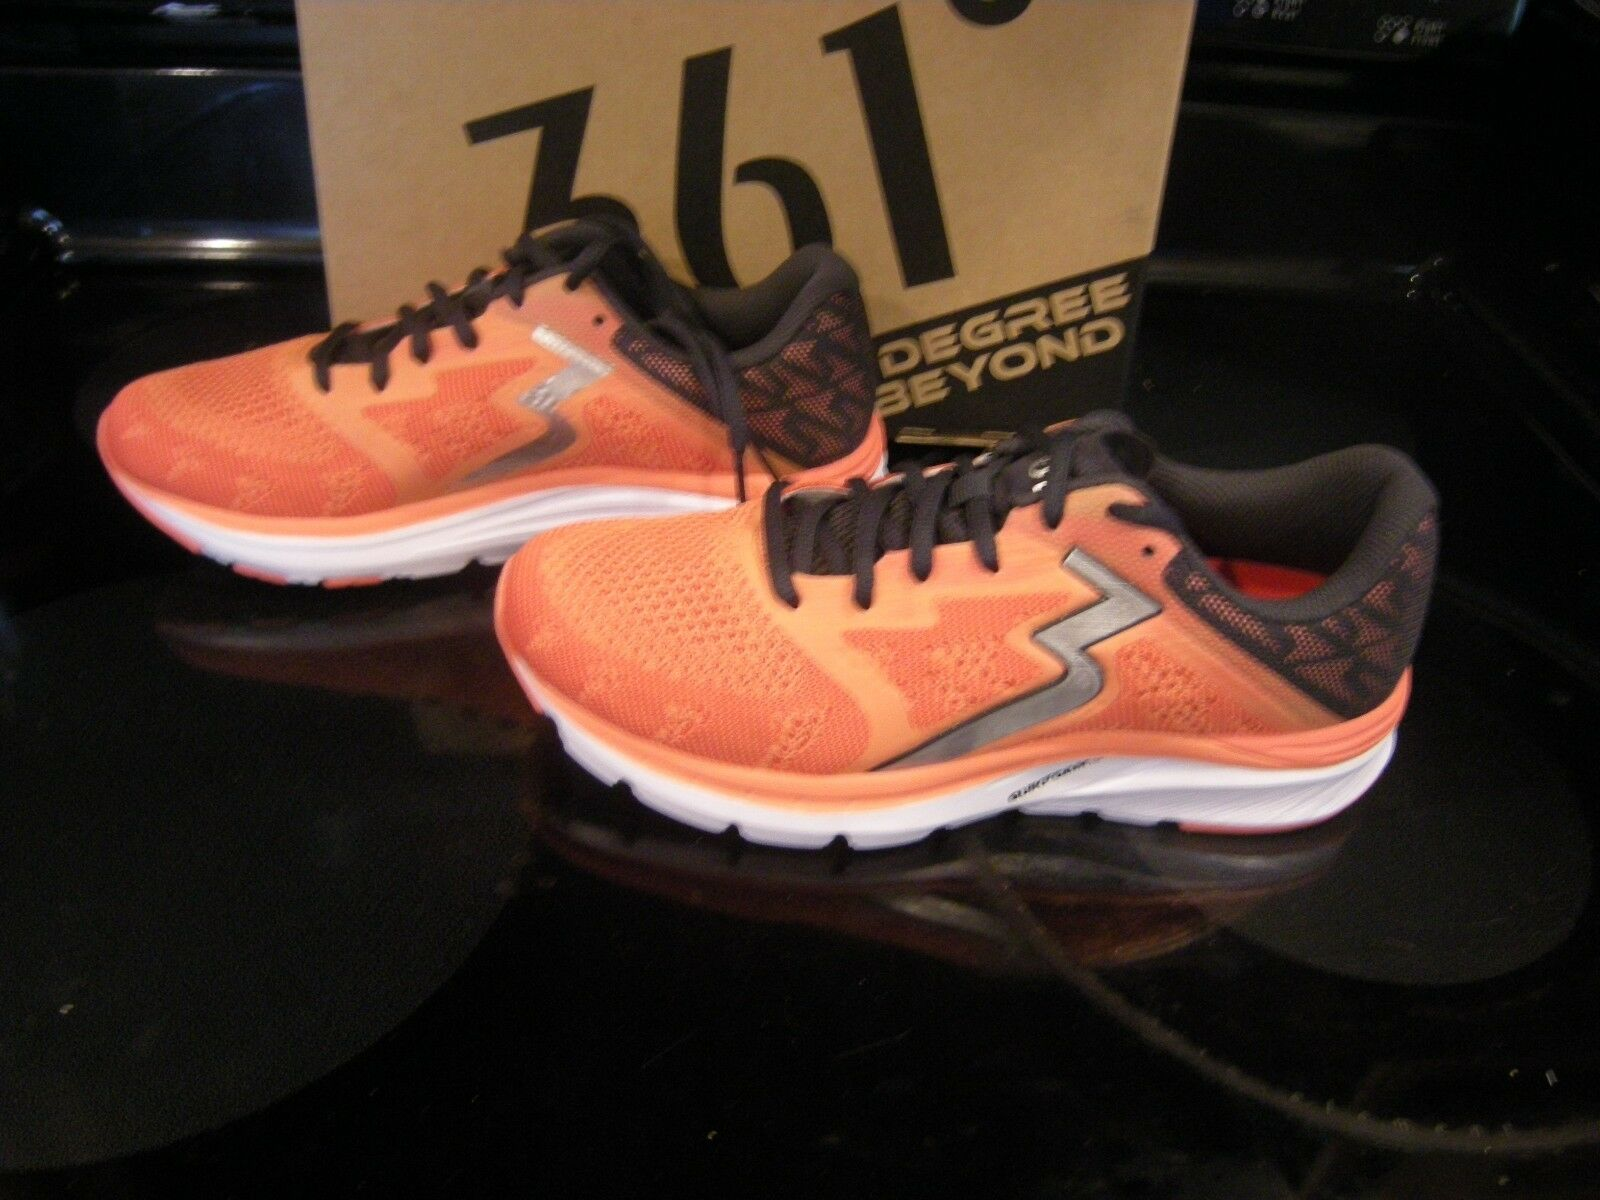 Brand New Womens Cali Coral & Ebony 361 Spinject Running Shoes, Size 8